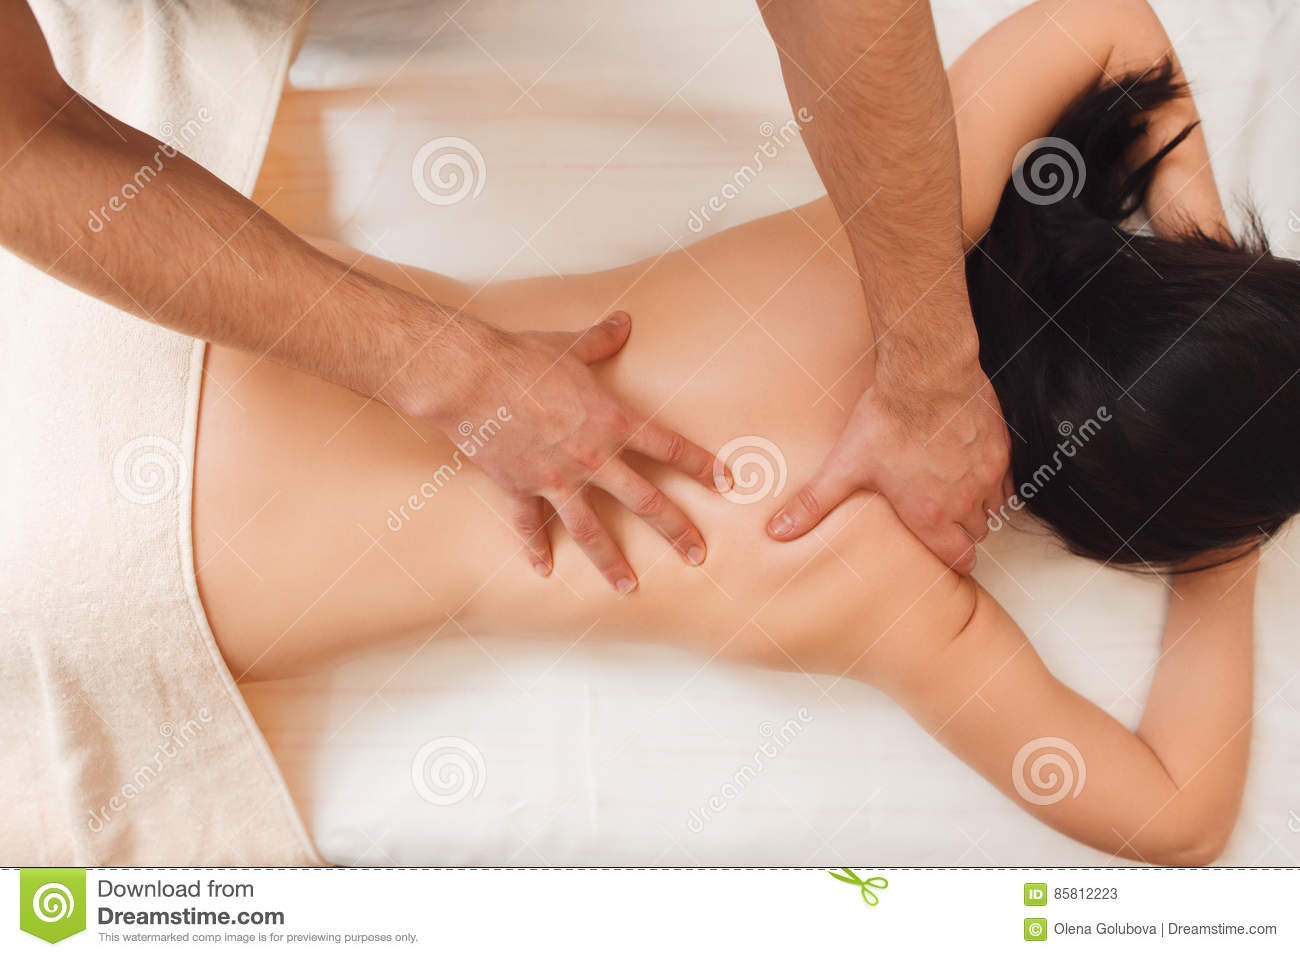 Healing Treatment Therapist Doing Healing Treatment On Woman Back Stock Image